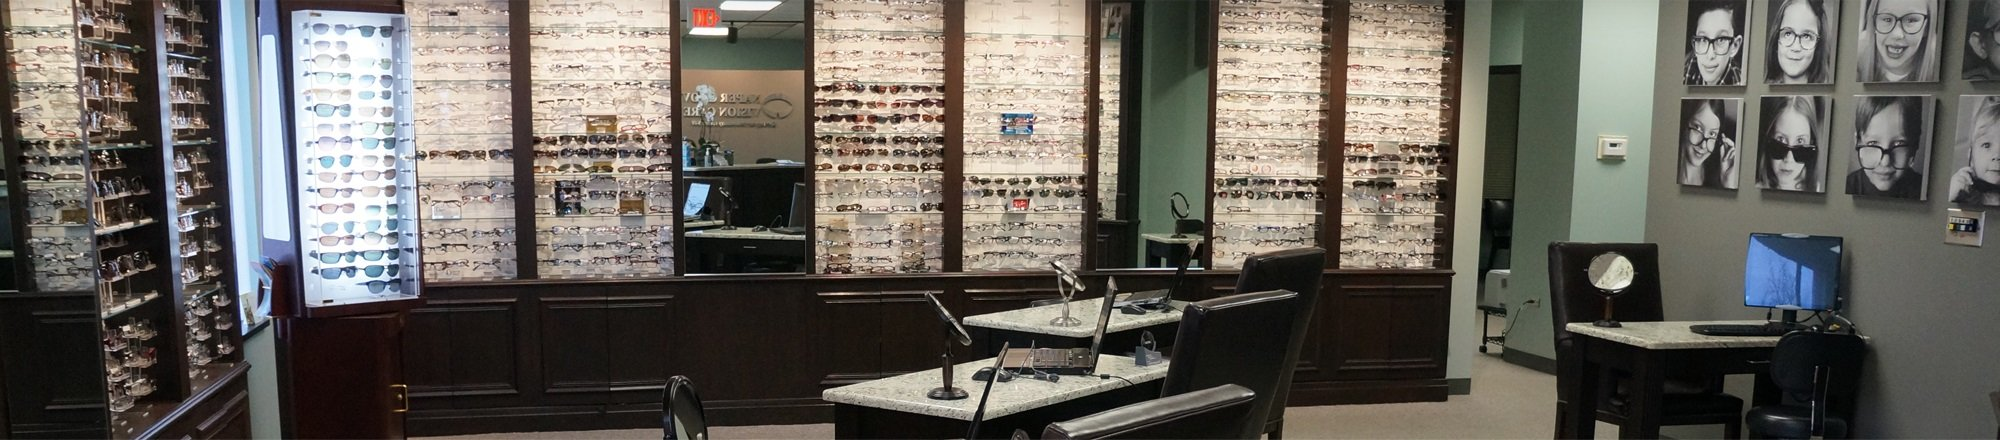 Our Downers Grove eyewear showroom.